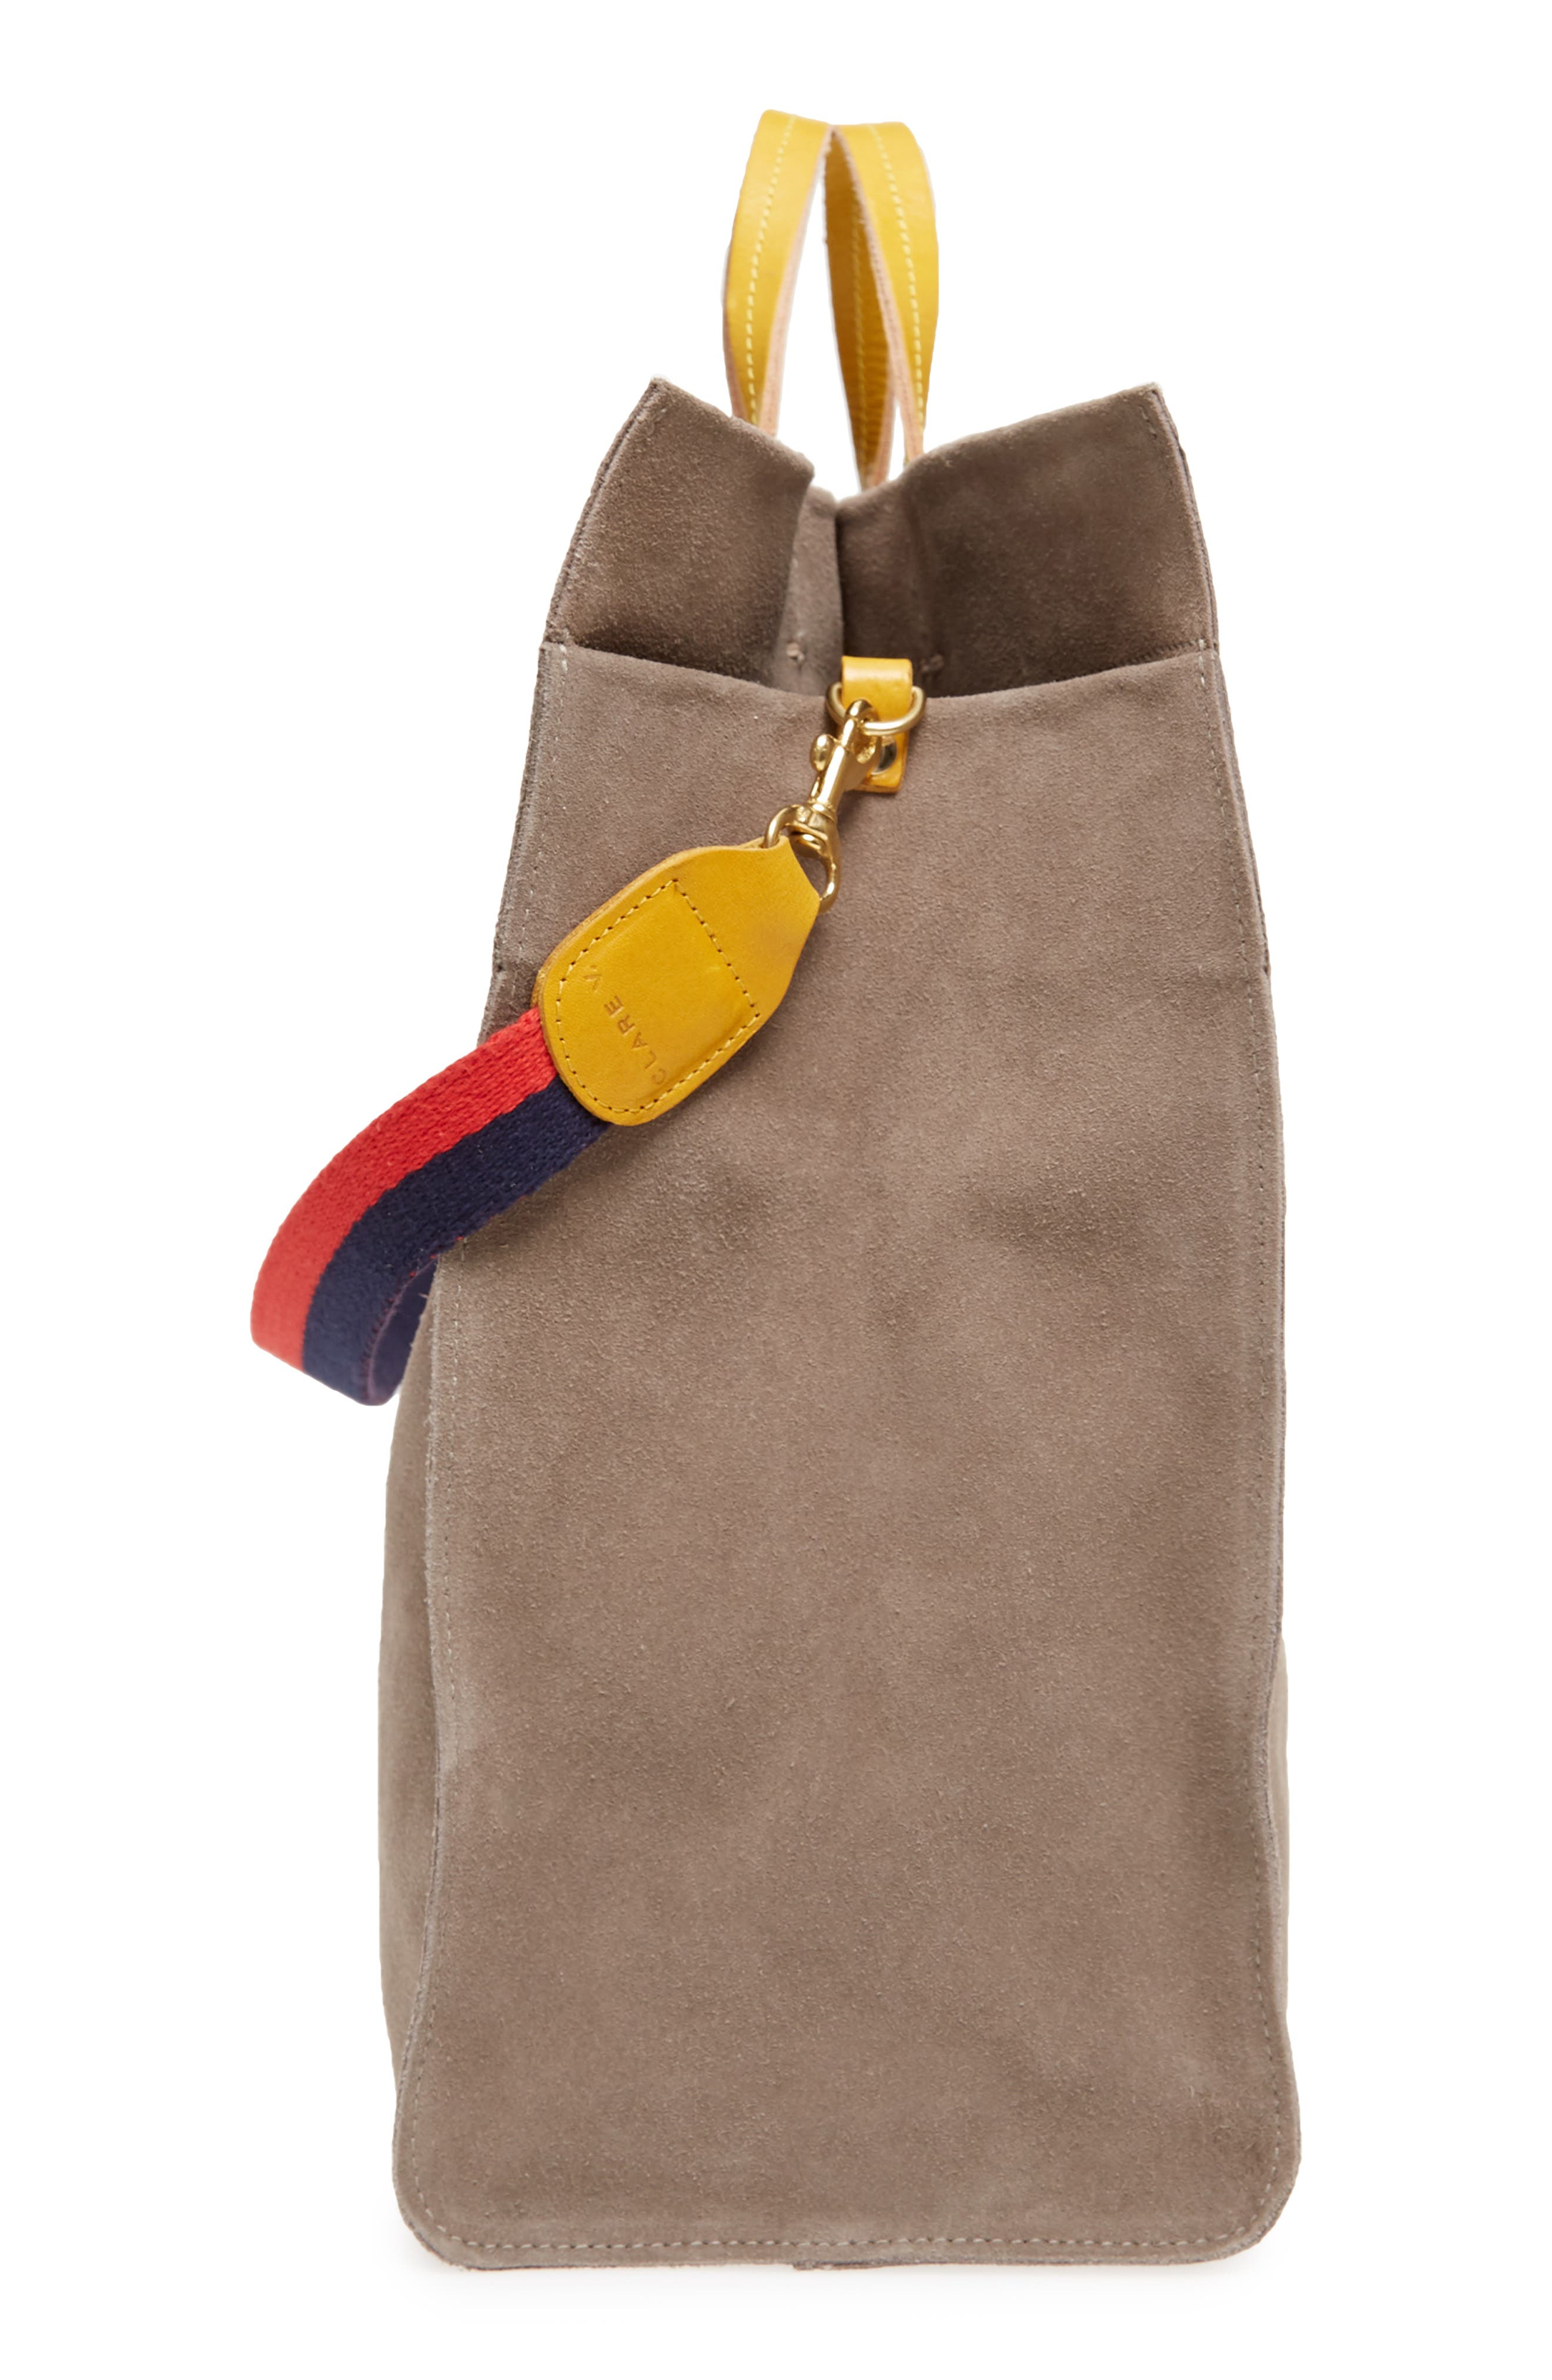 Simple Suede Tote,                             Alternate thumbnail 6, color,                             TAUPE/ YELLOW RUSTIC